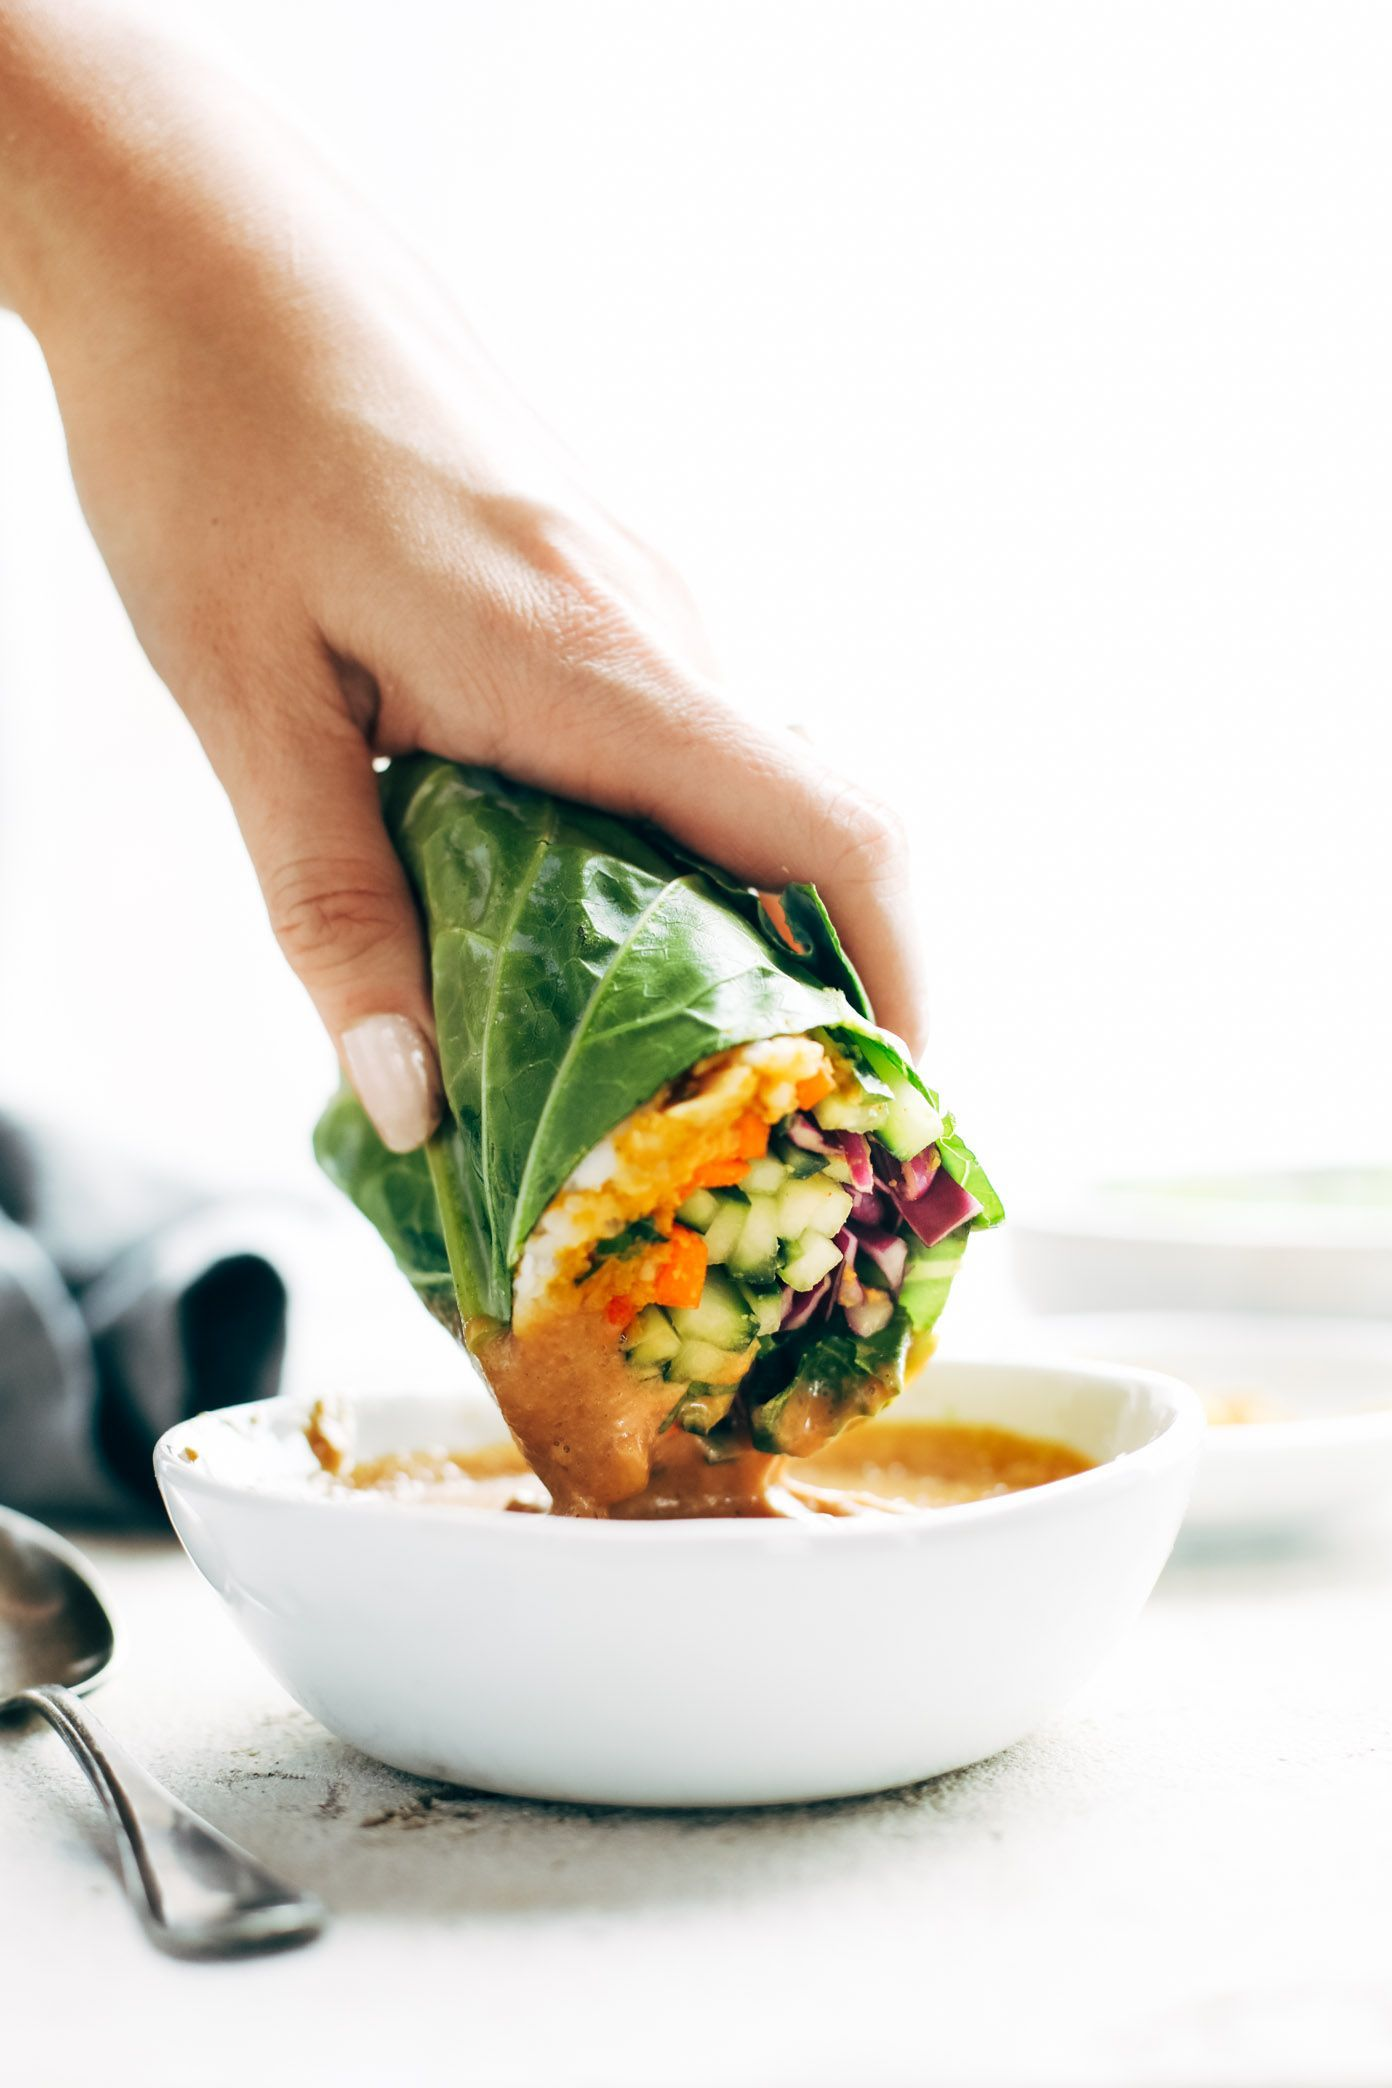 Rainbow Roll-Ups with Peanut Sauce Detox Rainbow Roll-Ups - with curry hummus and veggies in a collard leaf, dunked in peanut sauce! most beautiful healthy desk lunch! | Detox Rainbow Roll-Ups - with curry hummus and veggies in a collard leaf, dunked in peanut sauce! most beautiful healthy desk lunch! |